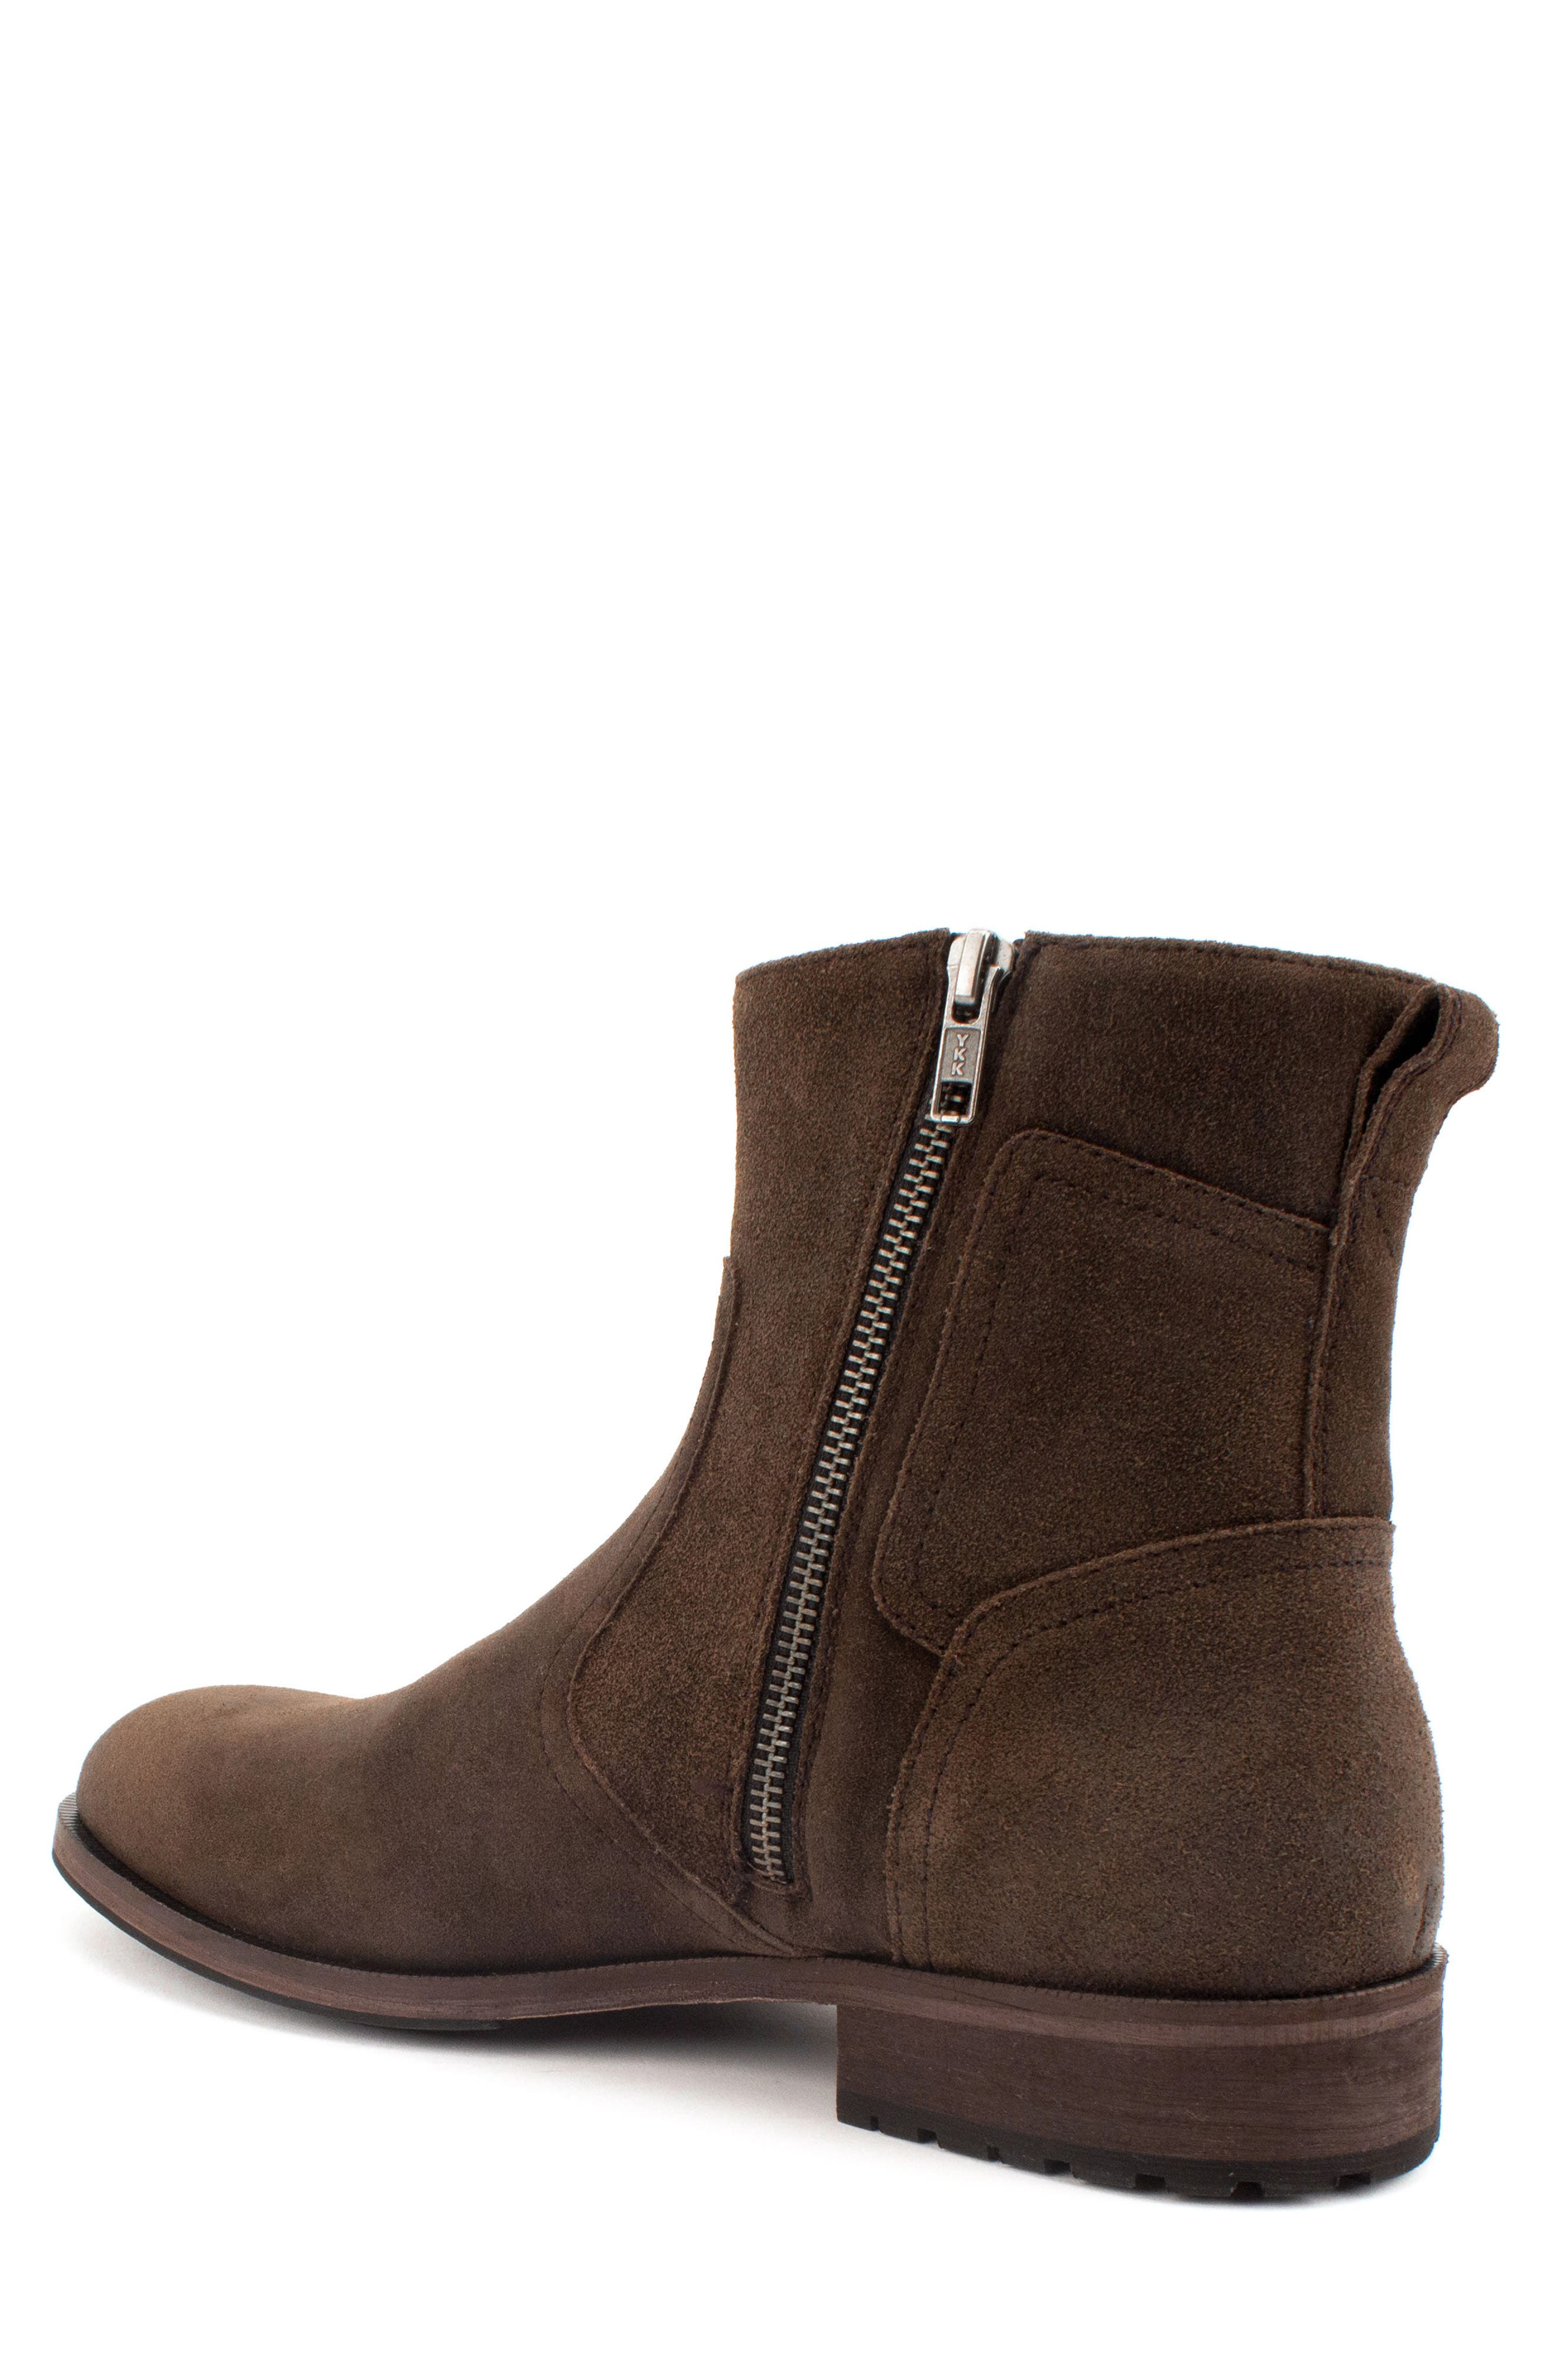 Fayette Plain Toe Zip Boot,                             Alternate thumbnail 2, color,                             CHOCOLATE SUEDE